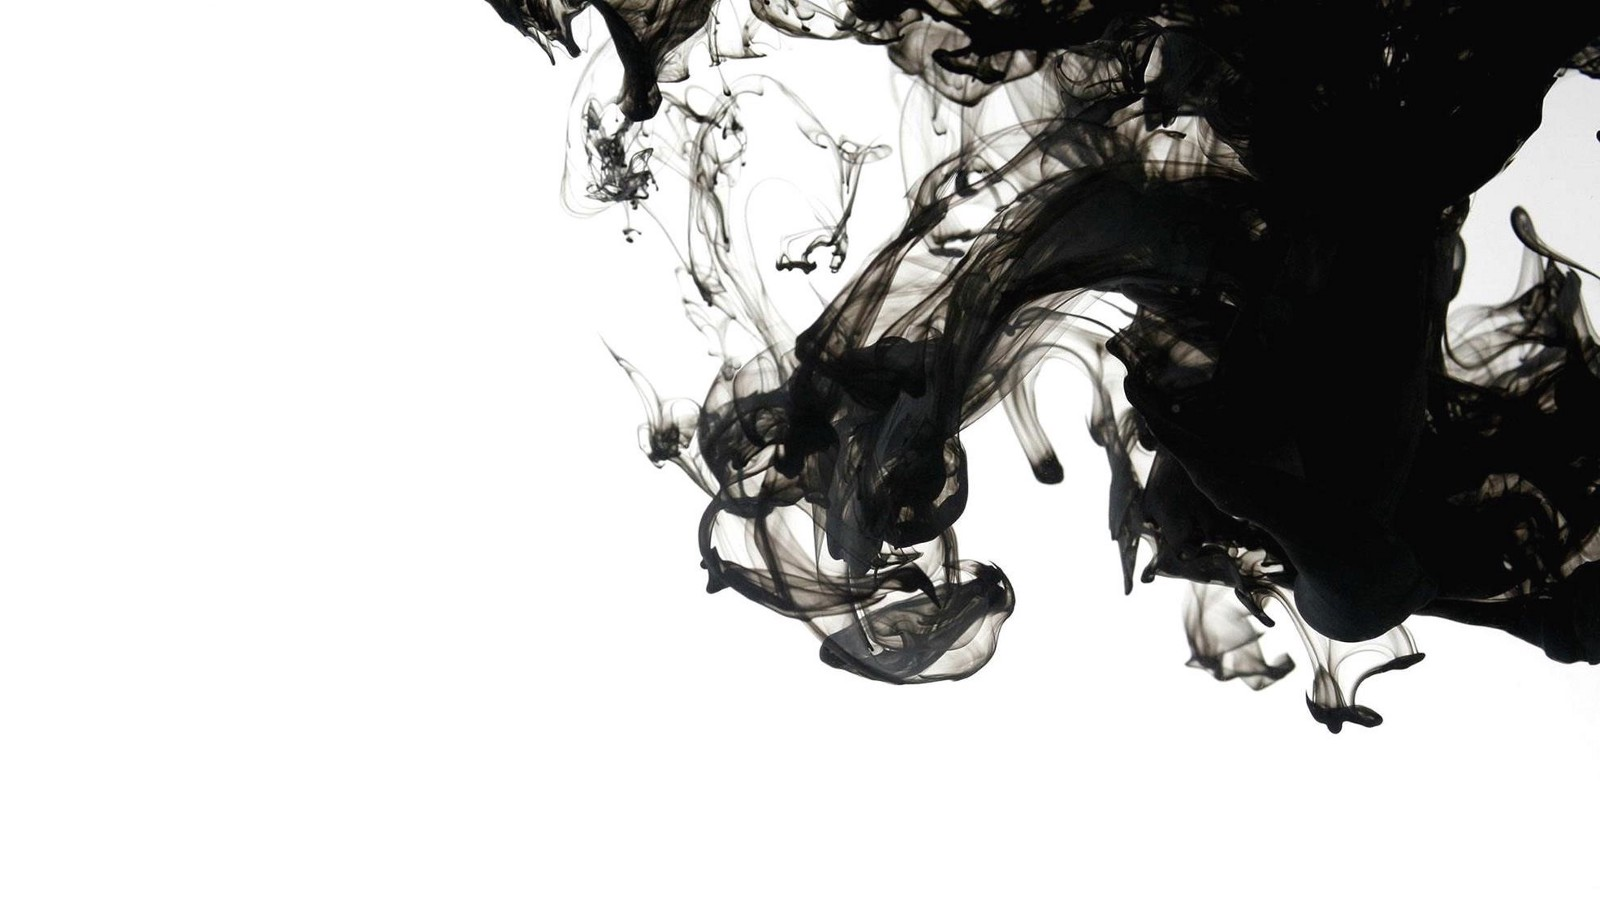 Download And View Black White Abstract Wallpapers HD For Your Desktop Or Mobile Background In Resolution Pleasewallpapercombo